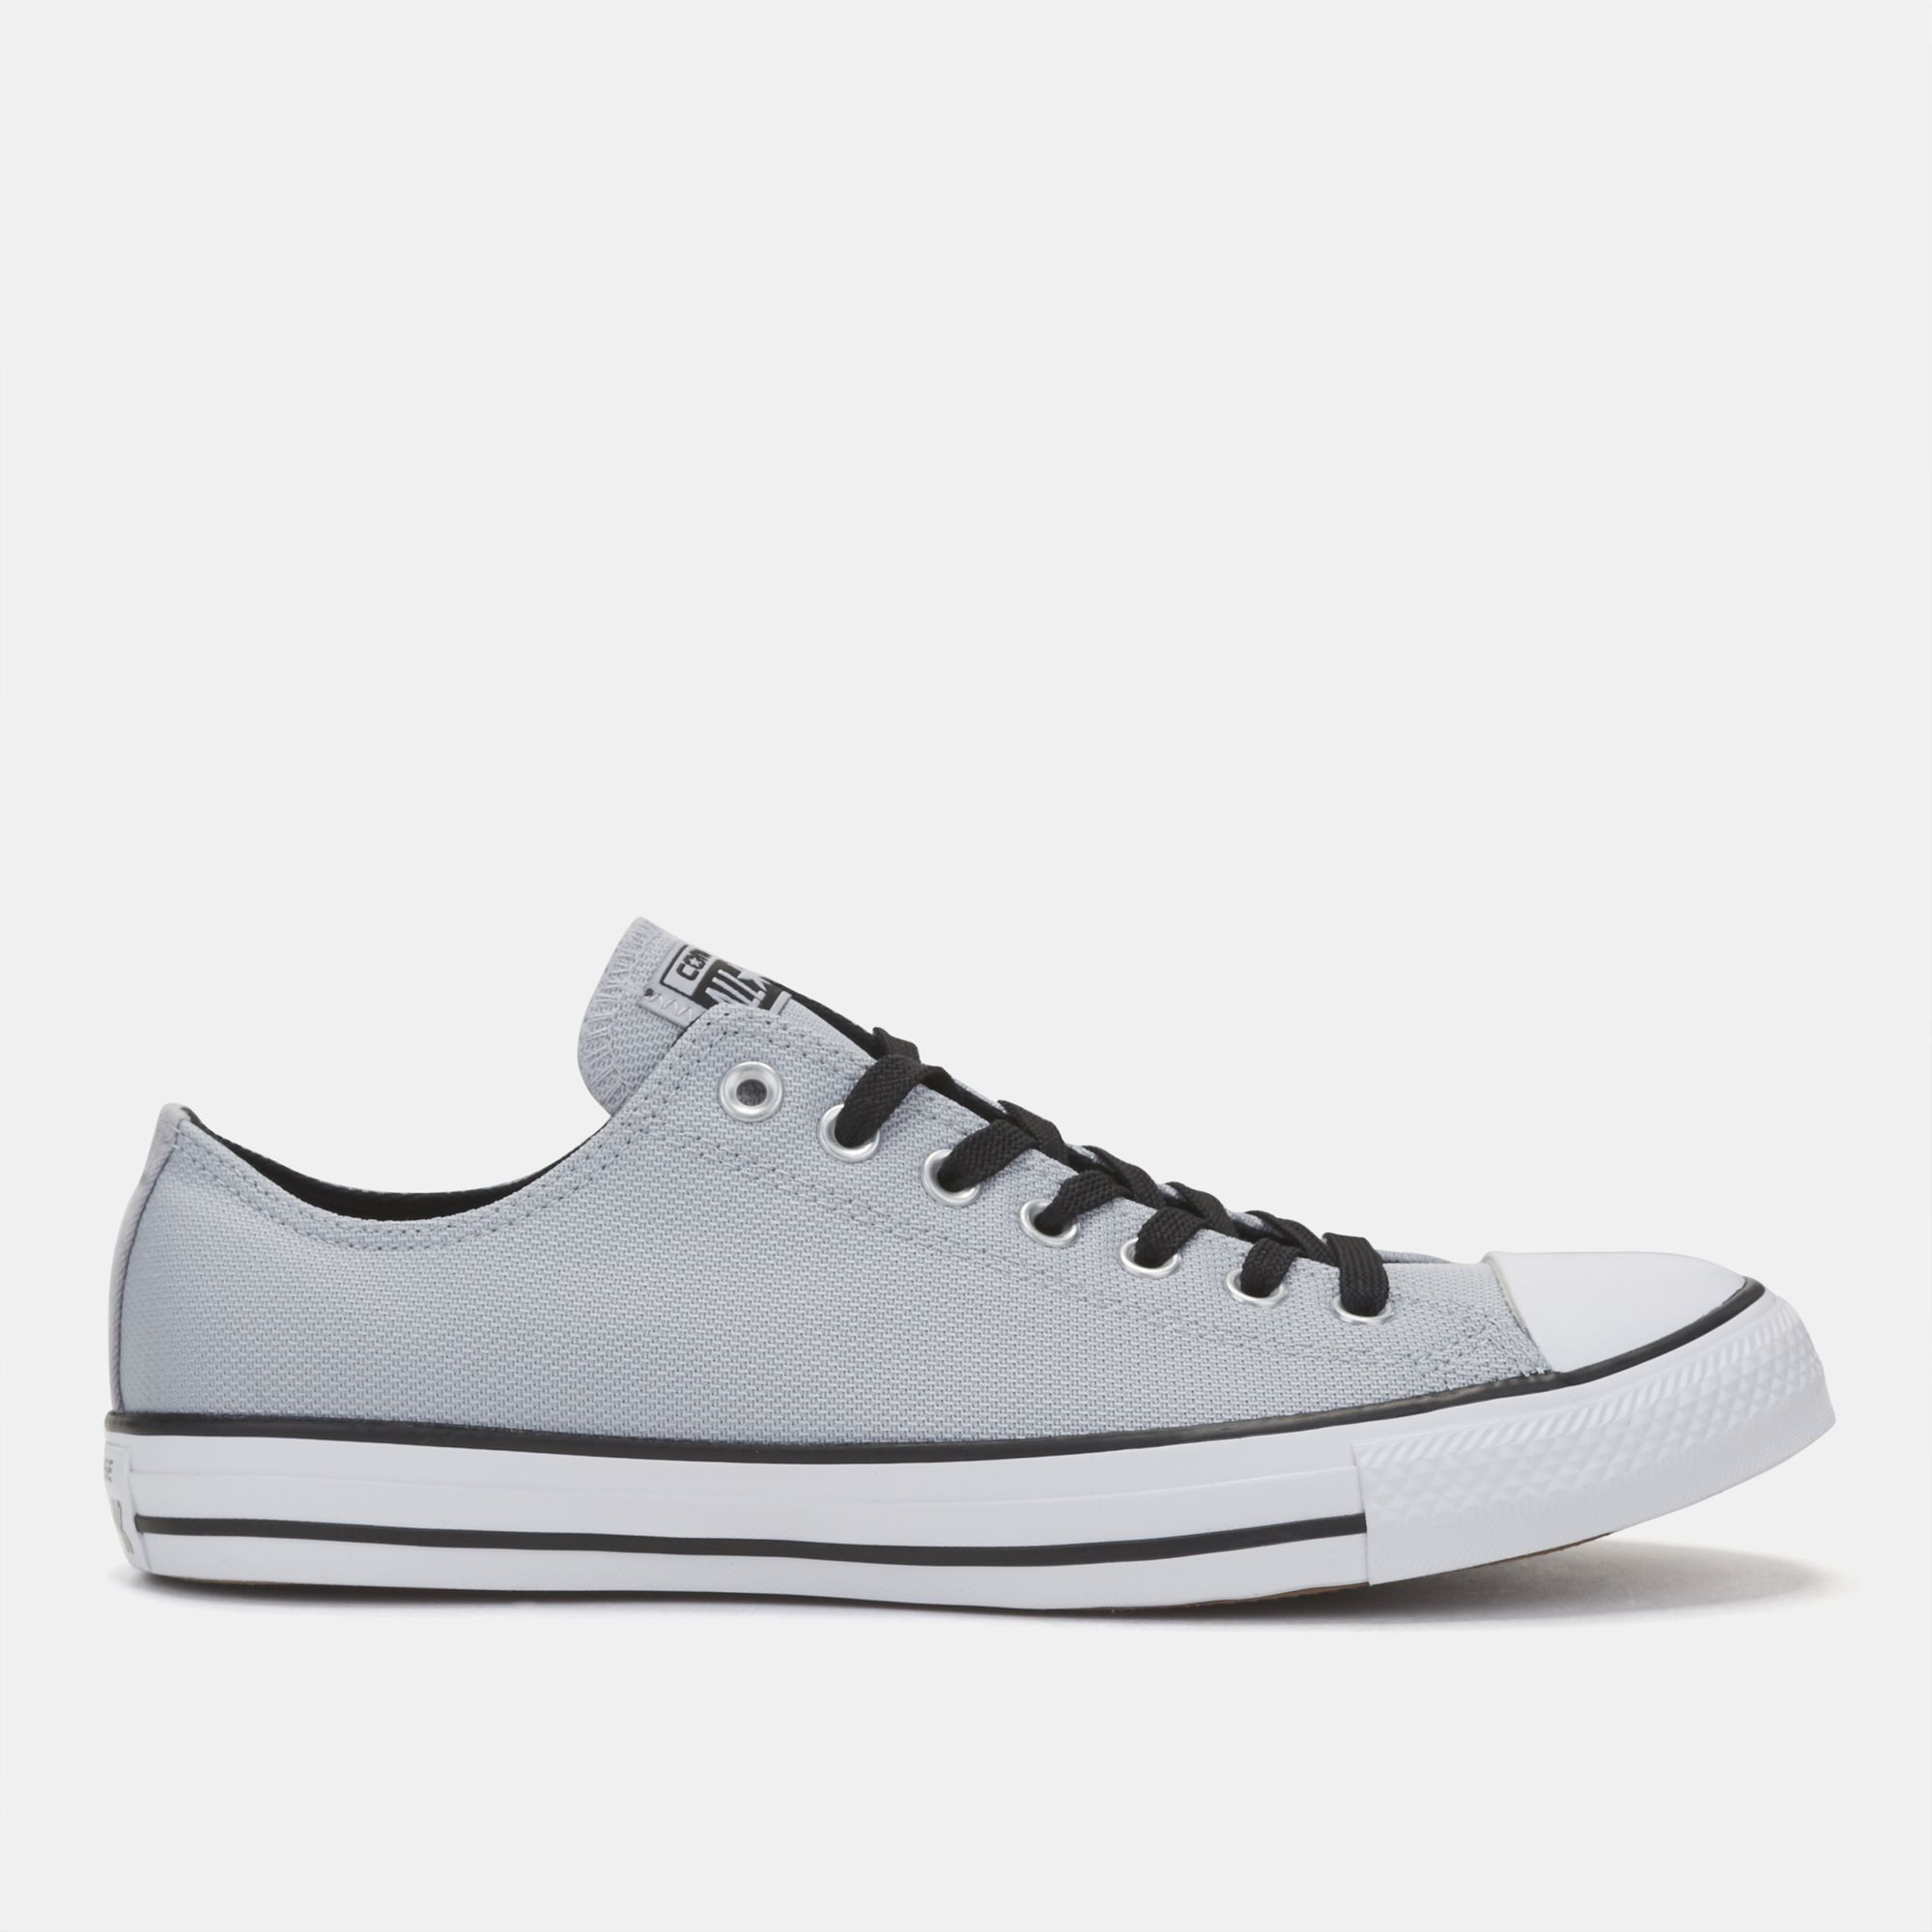 Shop Grey Converse Chuck Taylor All Star Core Oxford Shoe for Unisex ... 299ac7701